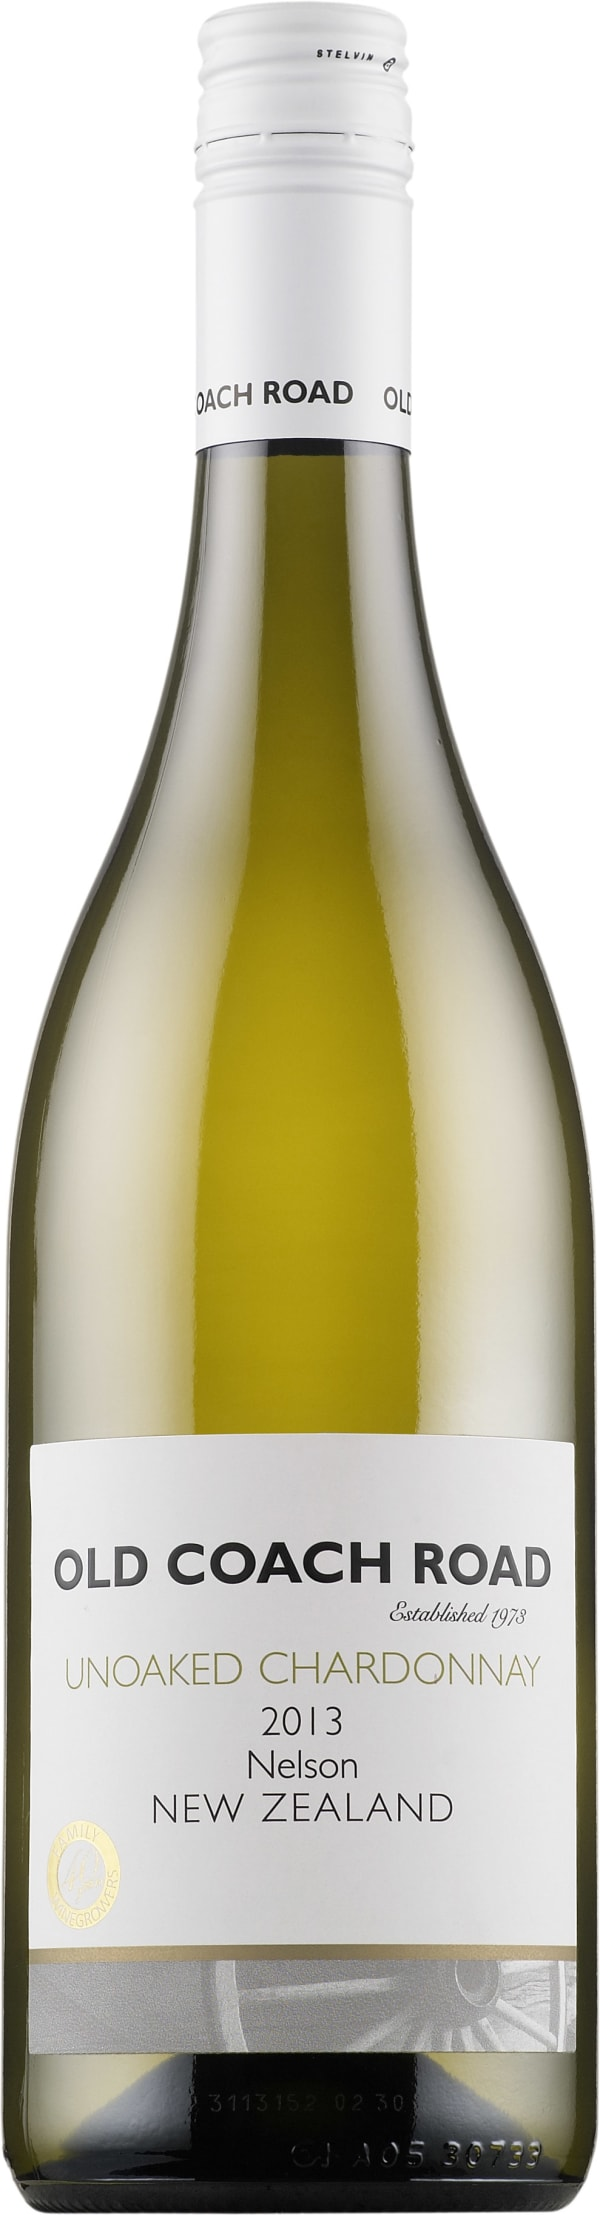 Old Coach Road Unoaked Chardonnay 2016